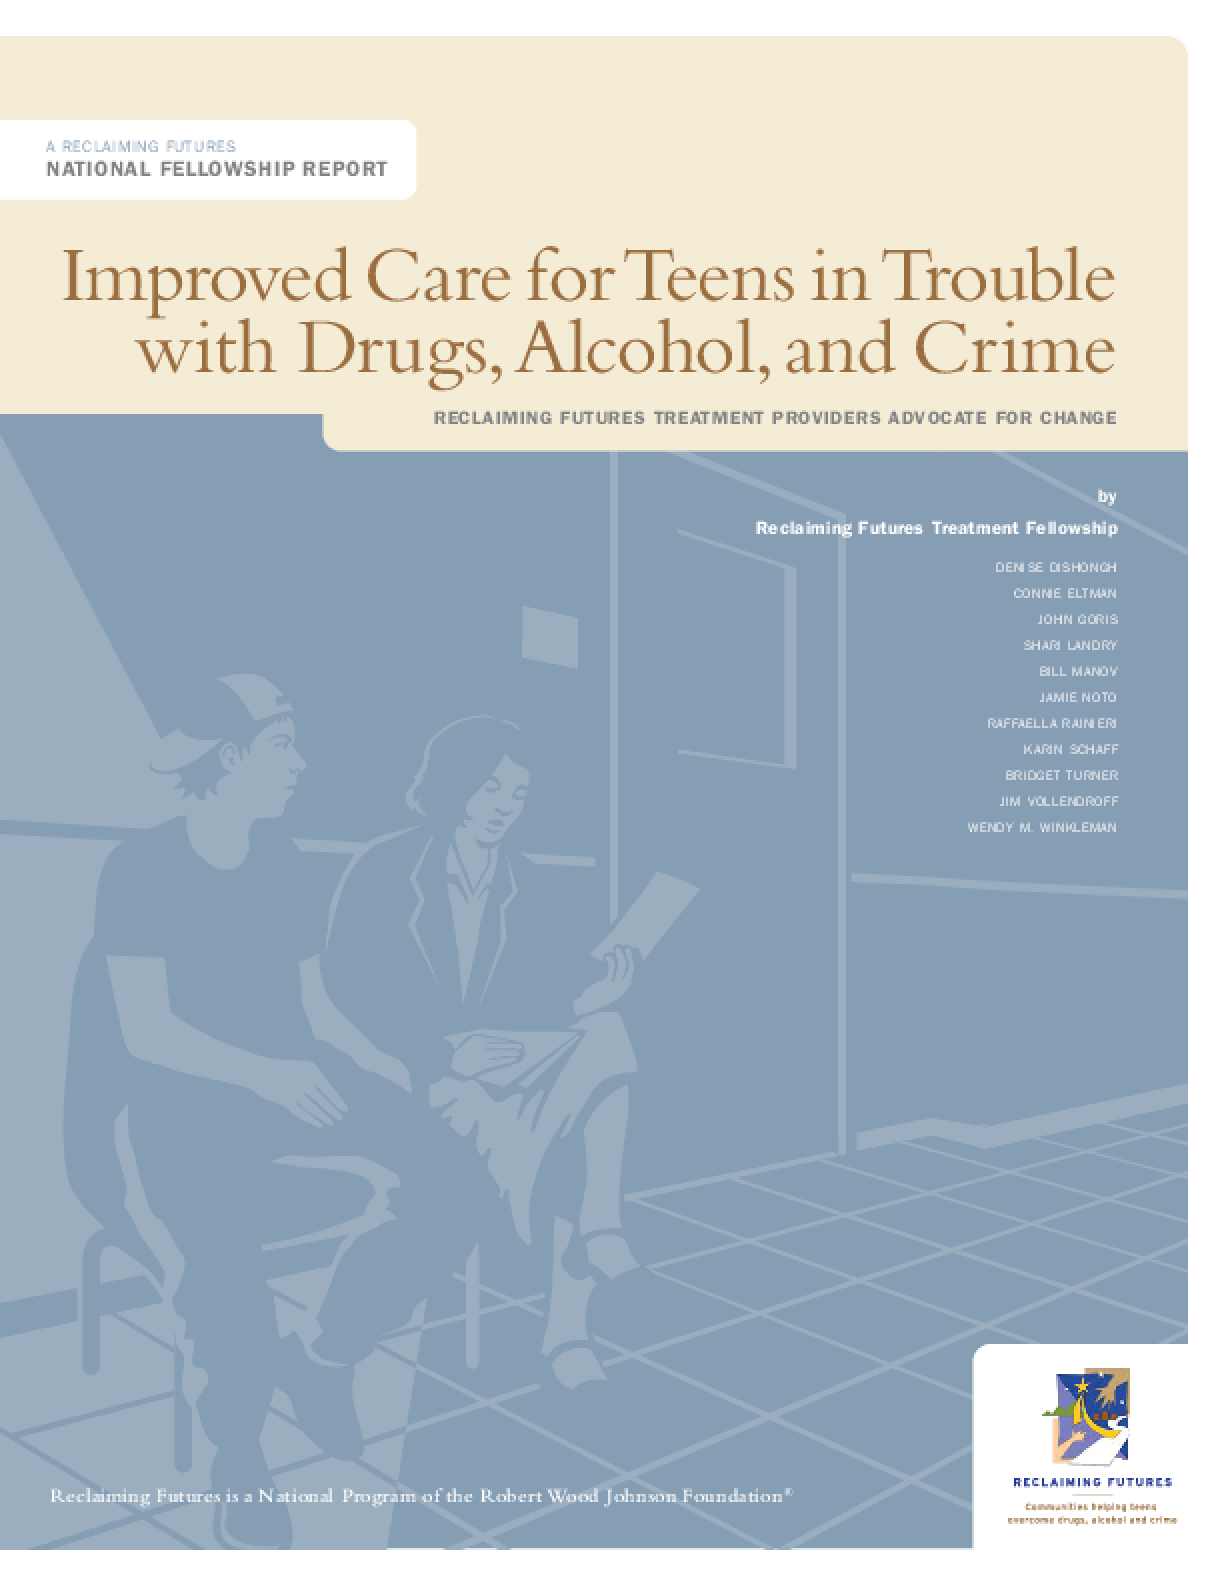 Improved Care for Teens in Trouble With Drugs, Alcohol, and Crime